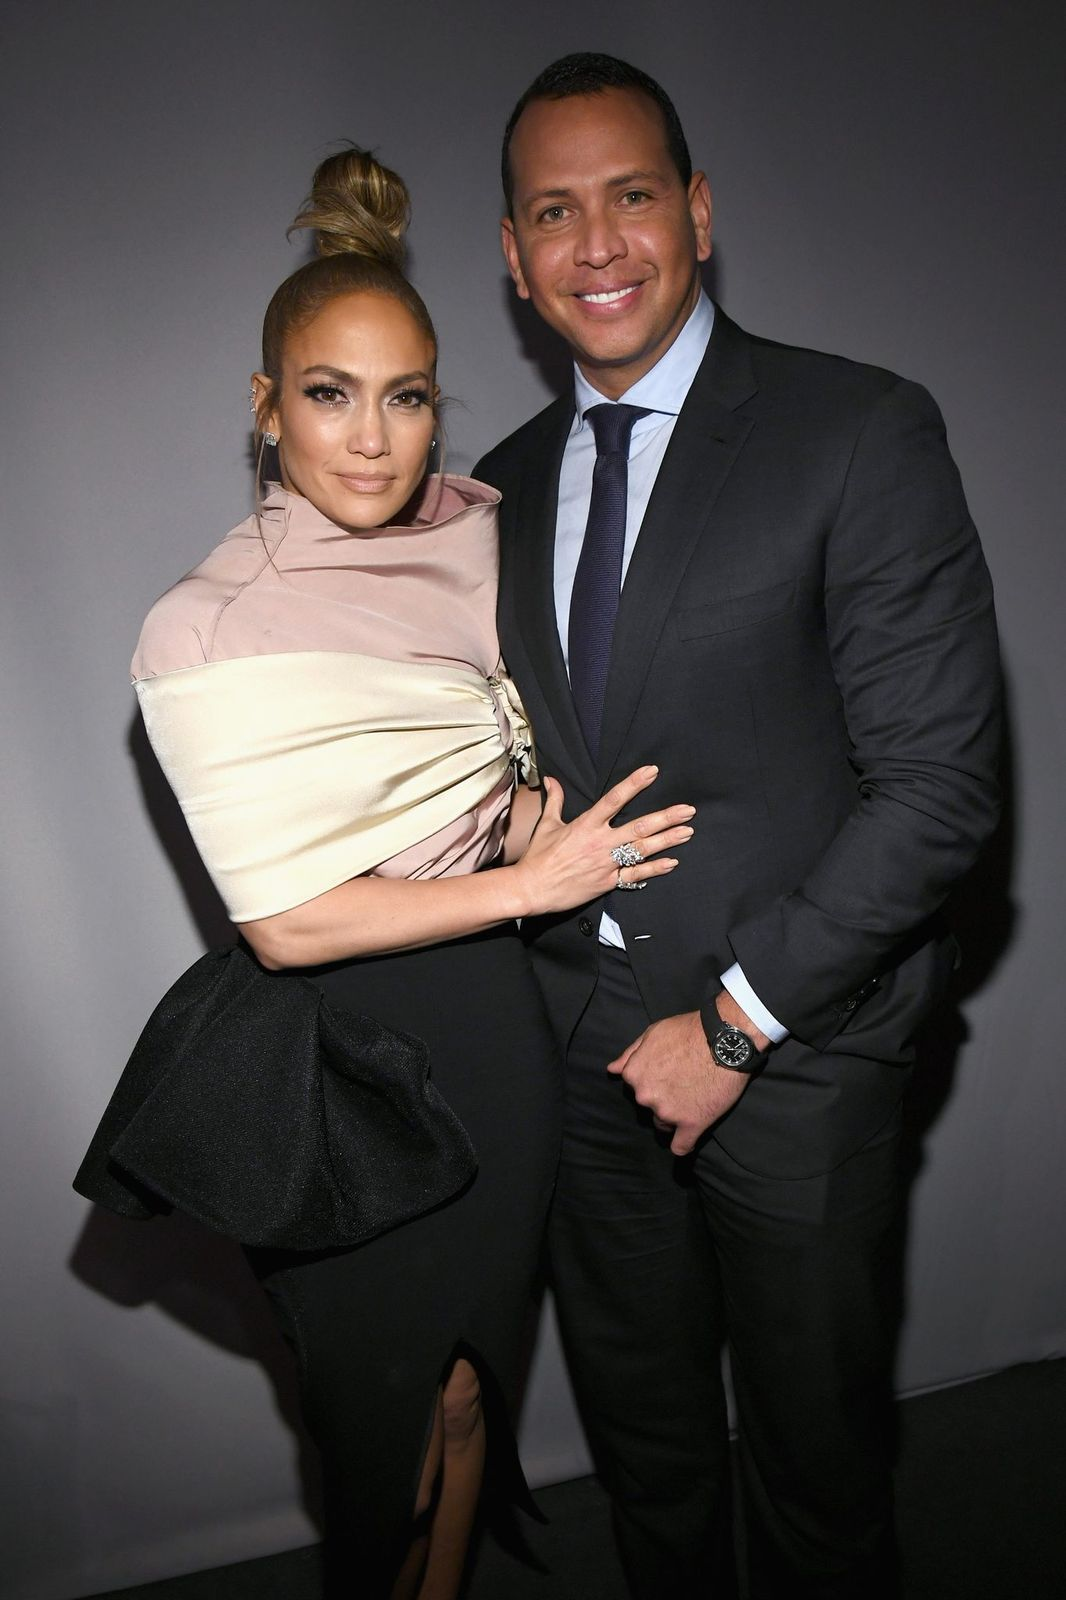 Jennifer Lopez and Alex Rodriguez at ELLE's 25th Annual Women In Hollywood Celebration at the Four Seasons Hotel Los Angeles at Beverly Hills in Los Angeles, California | Photo: Kevin Mazur/Getty Images for ELLE Magazine